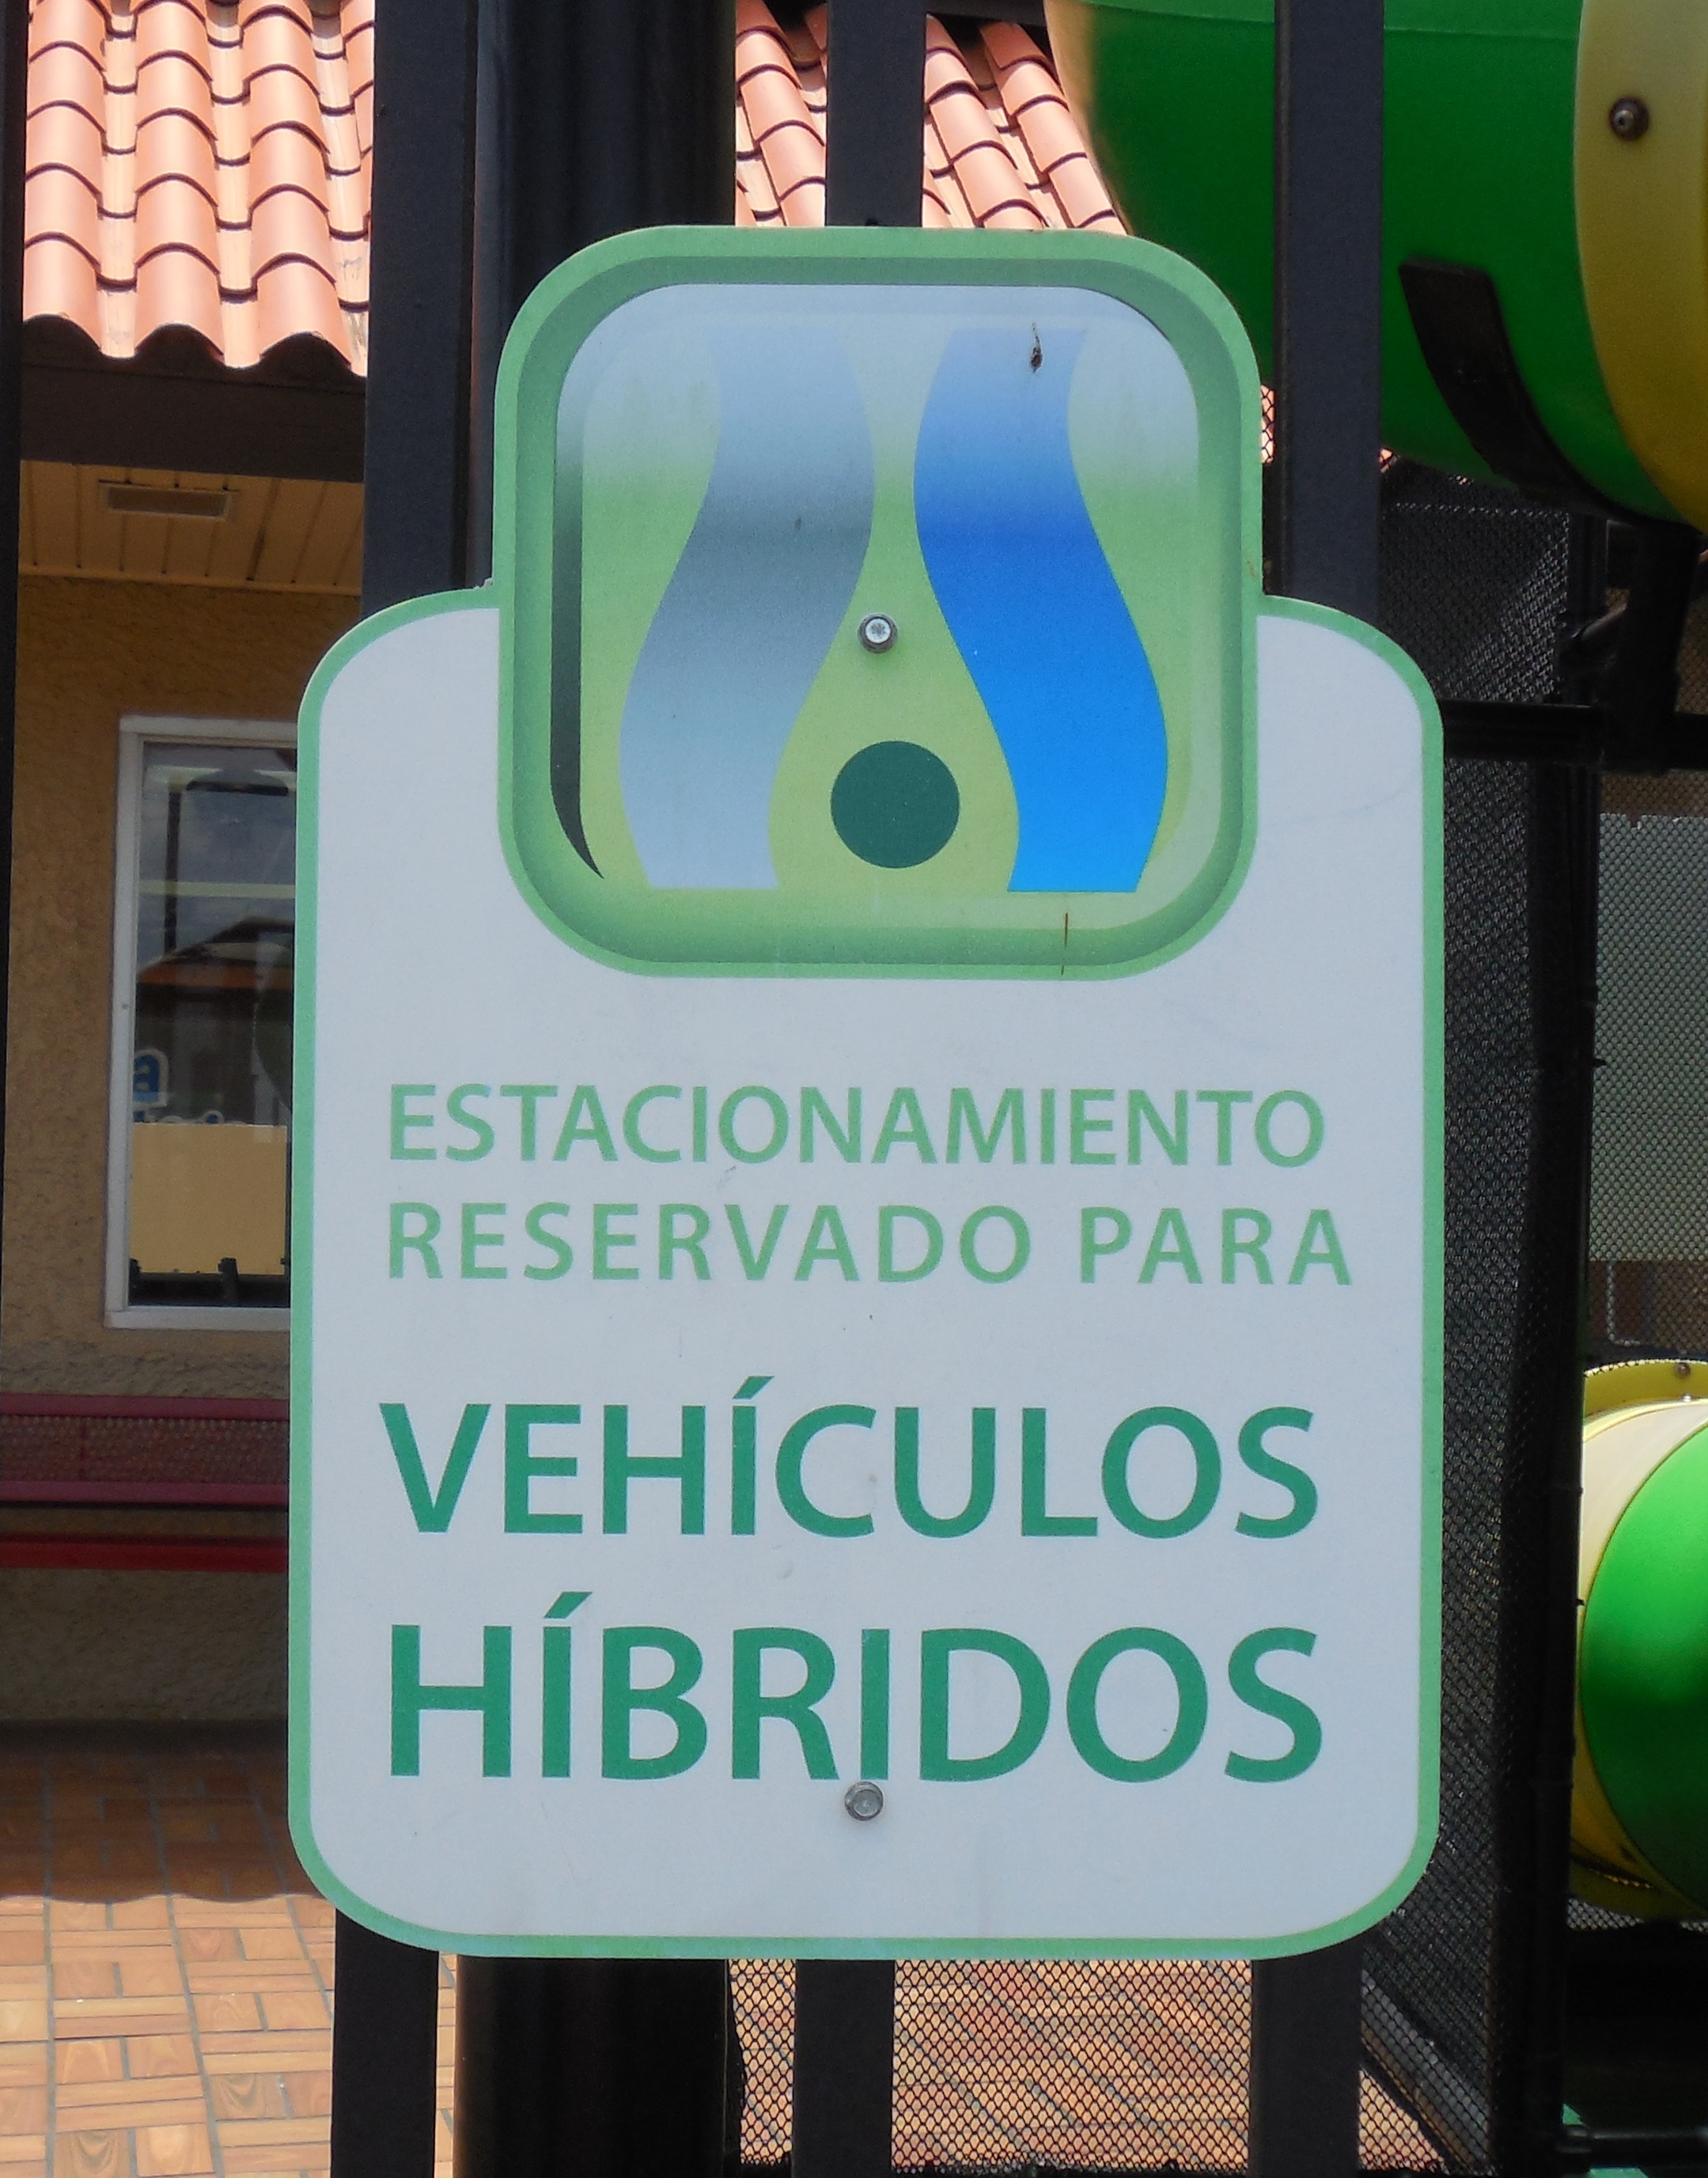 Puerto Rico has Hybrid Parking Signs